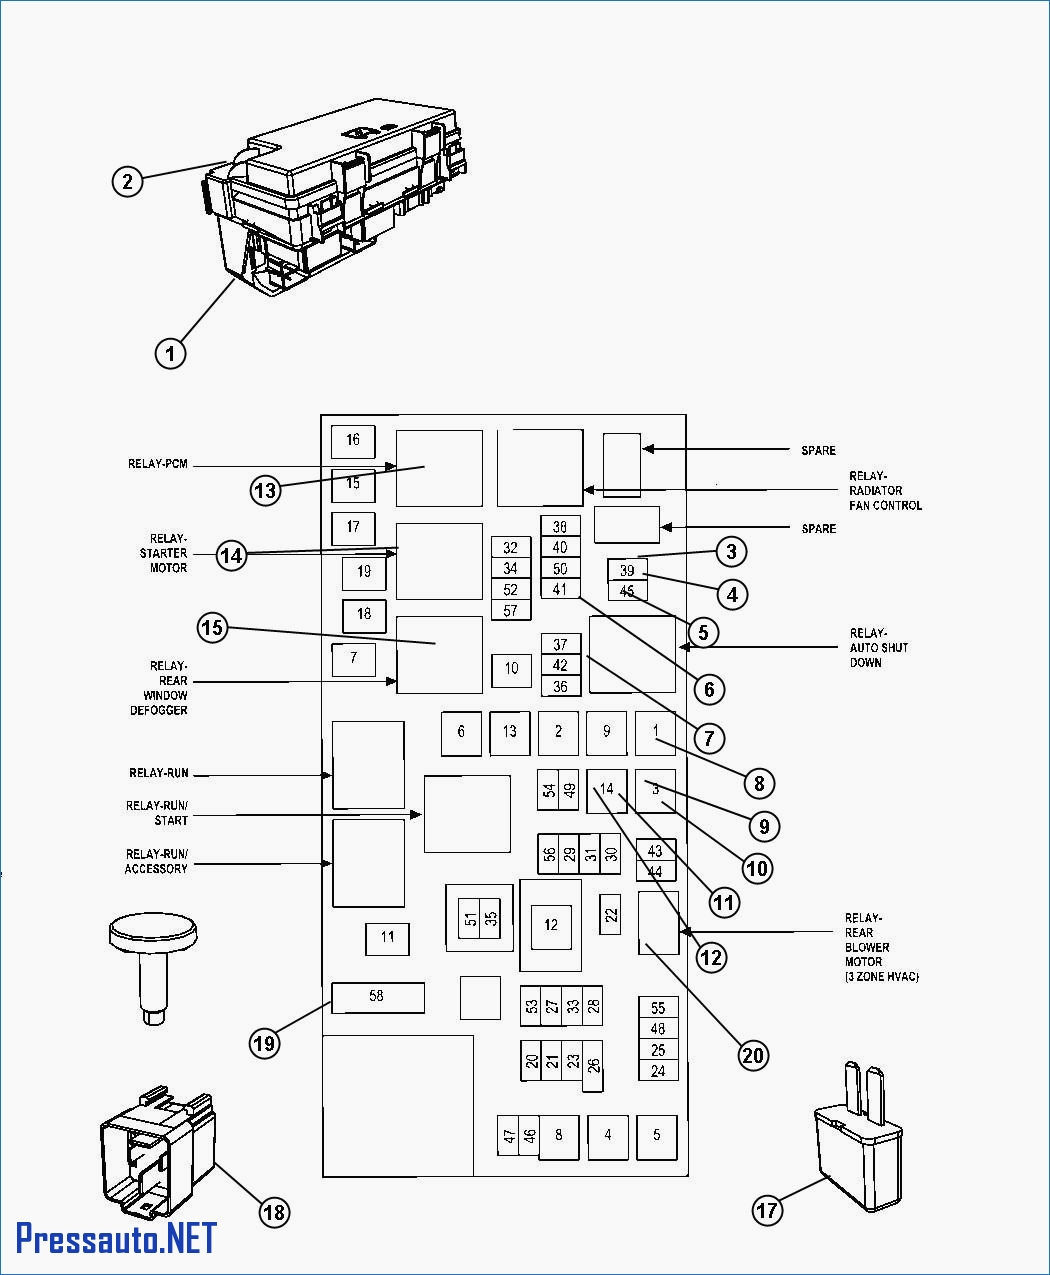 wiring diagram for 2008 dodge charger  u2022 wiring diagram for